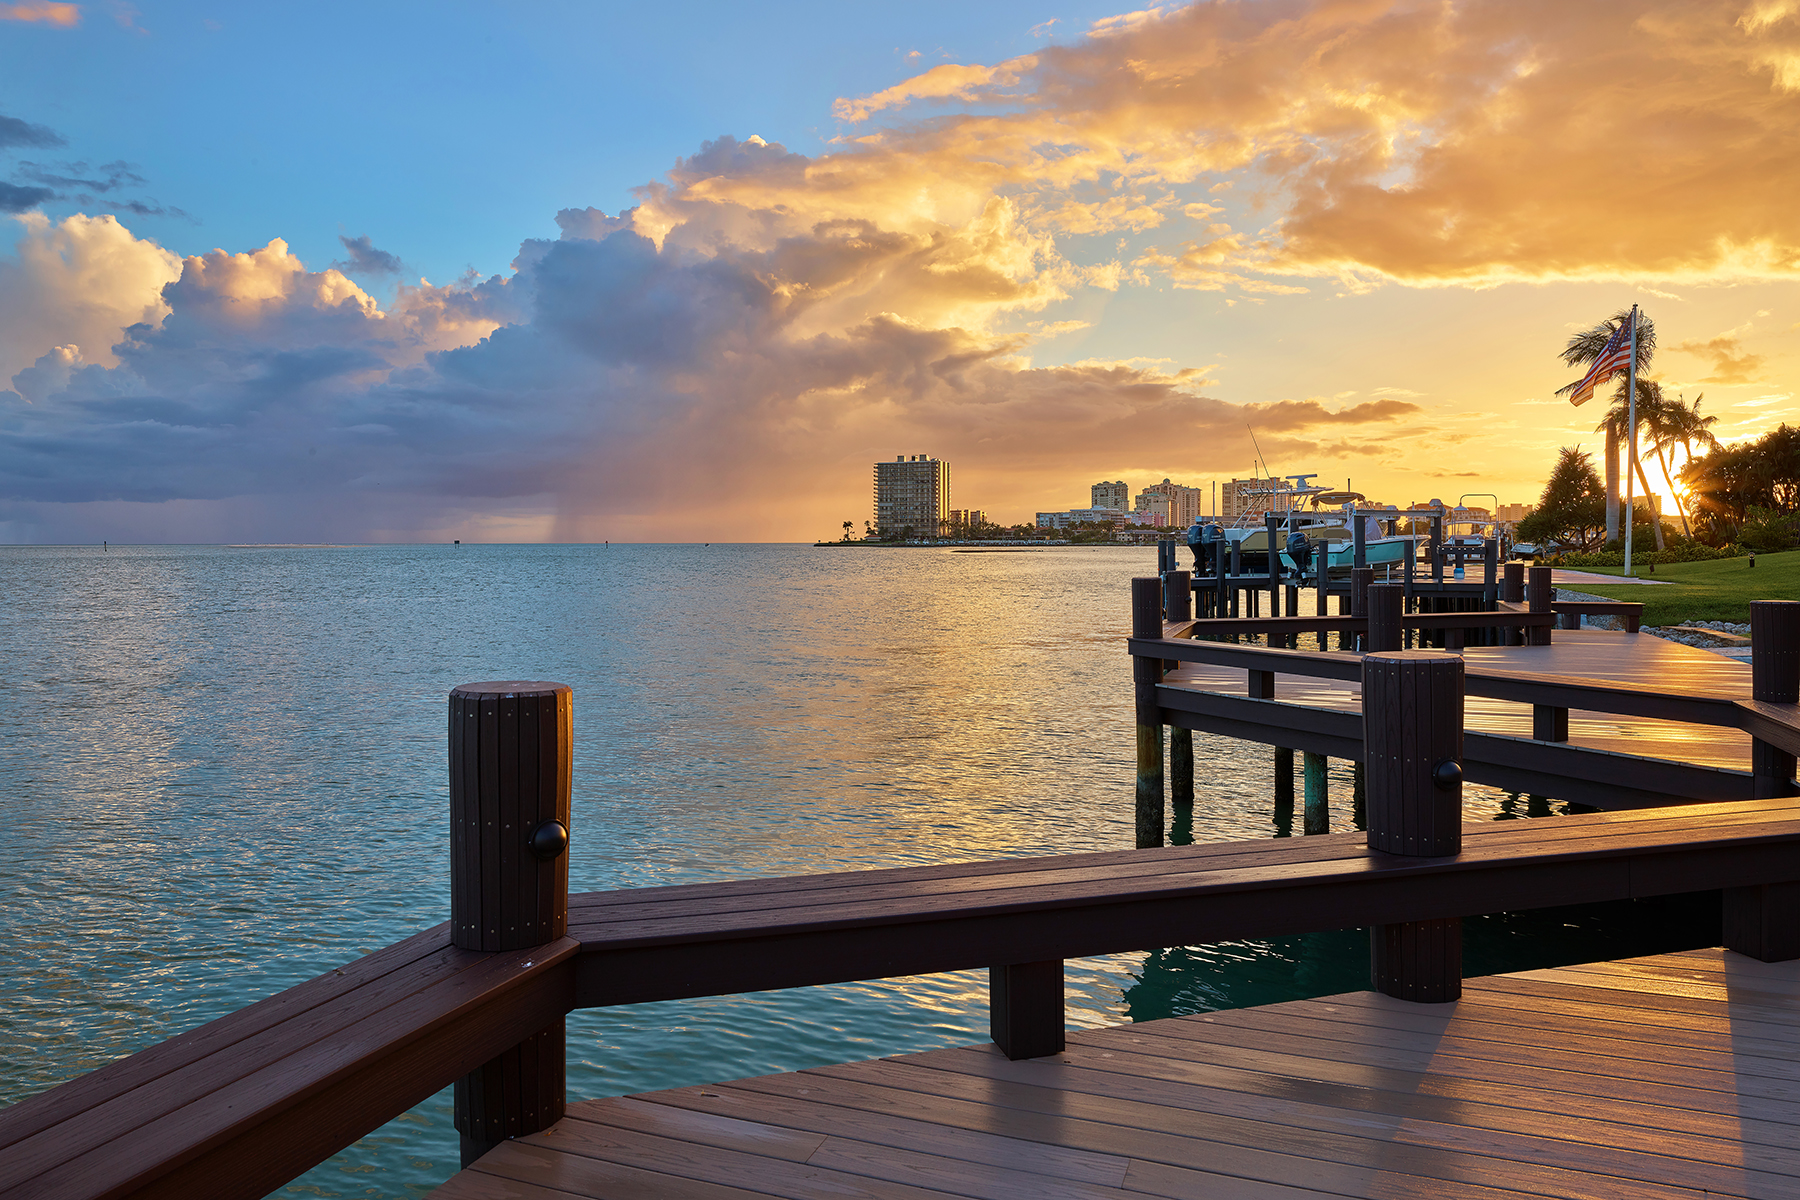 Single Family Homes for Sale at MARCO ISLAND - ESTATES 1471 Caxambas Court, Marco Island, Florida 34145 United States